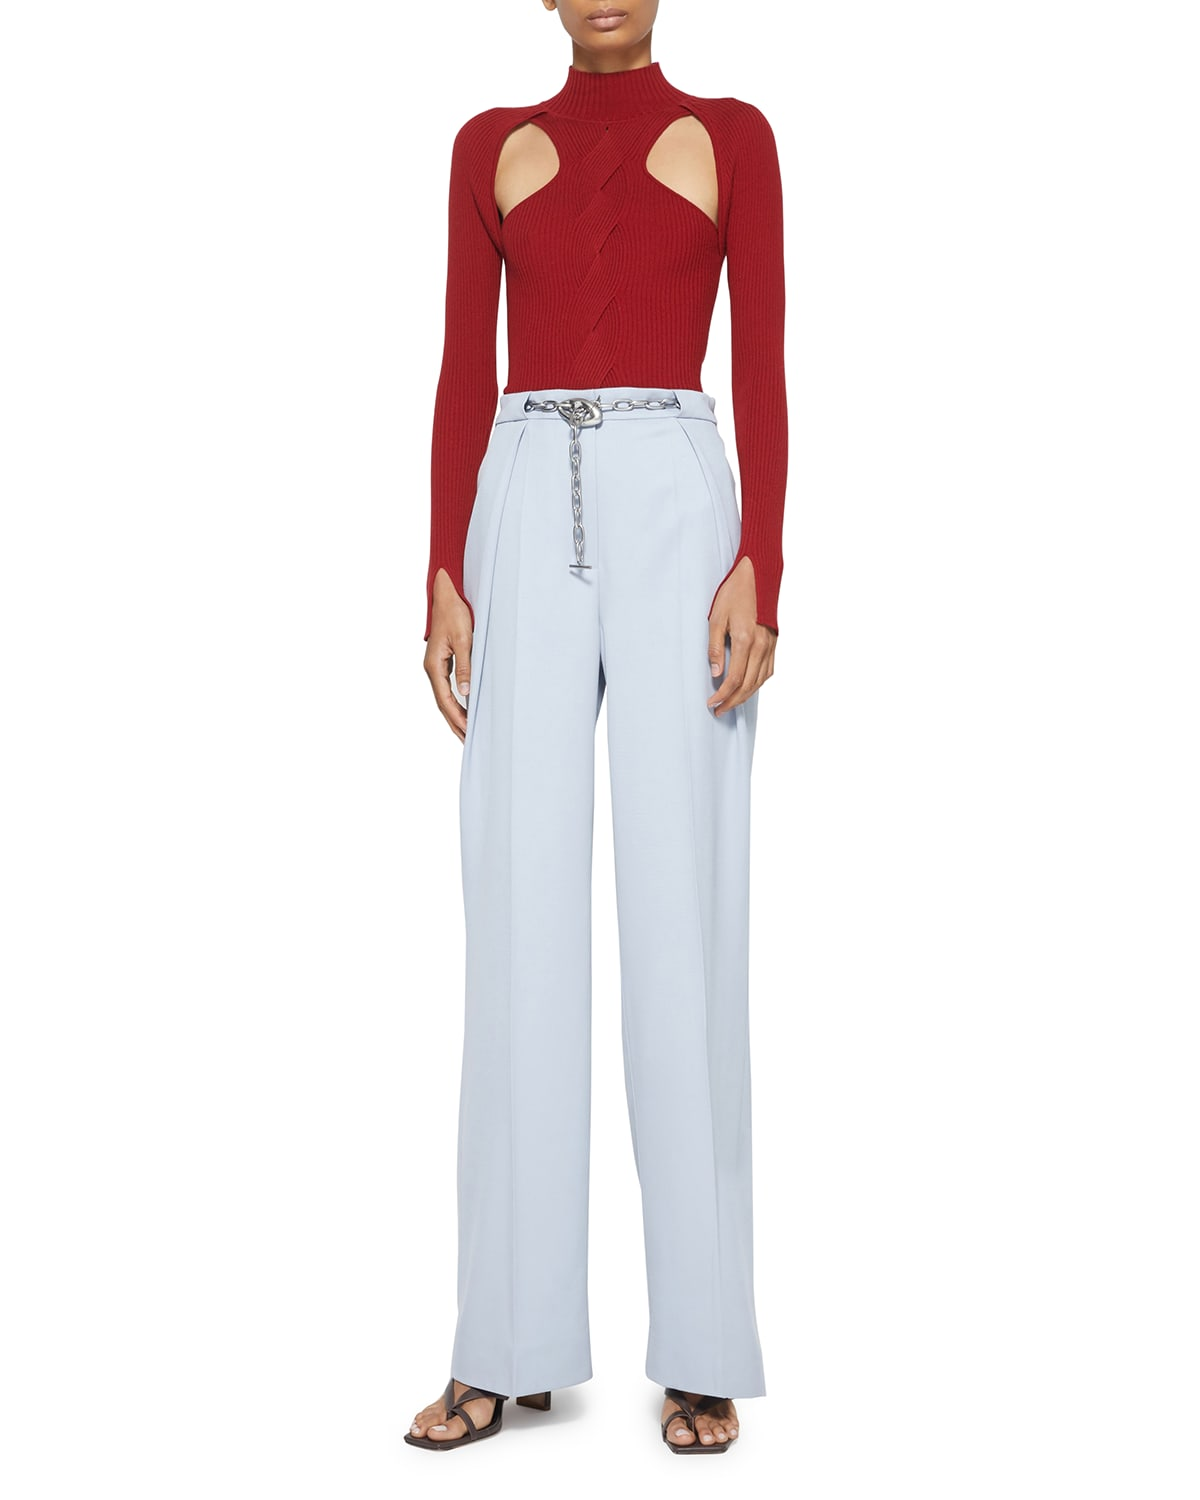 Keegan Twisted Cable-Knit Top